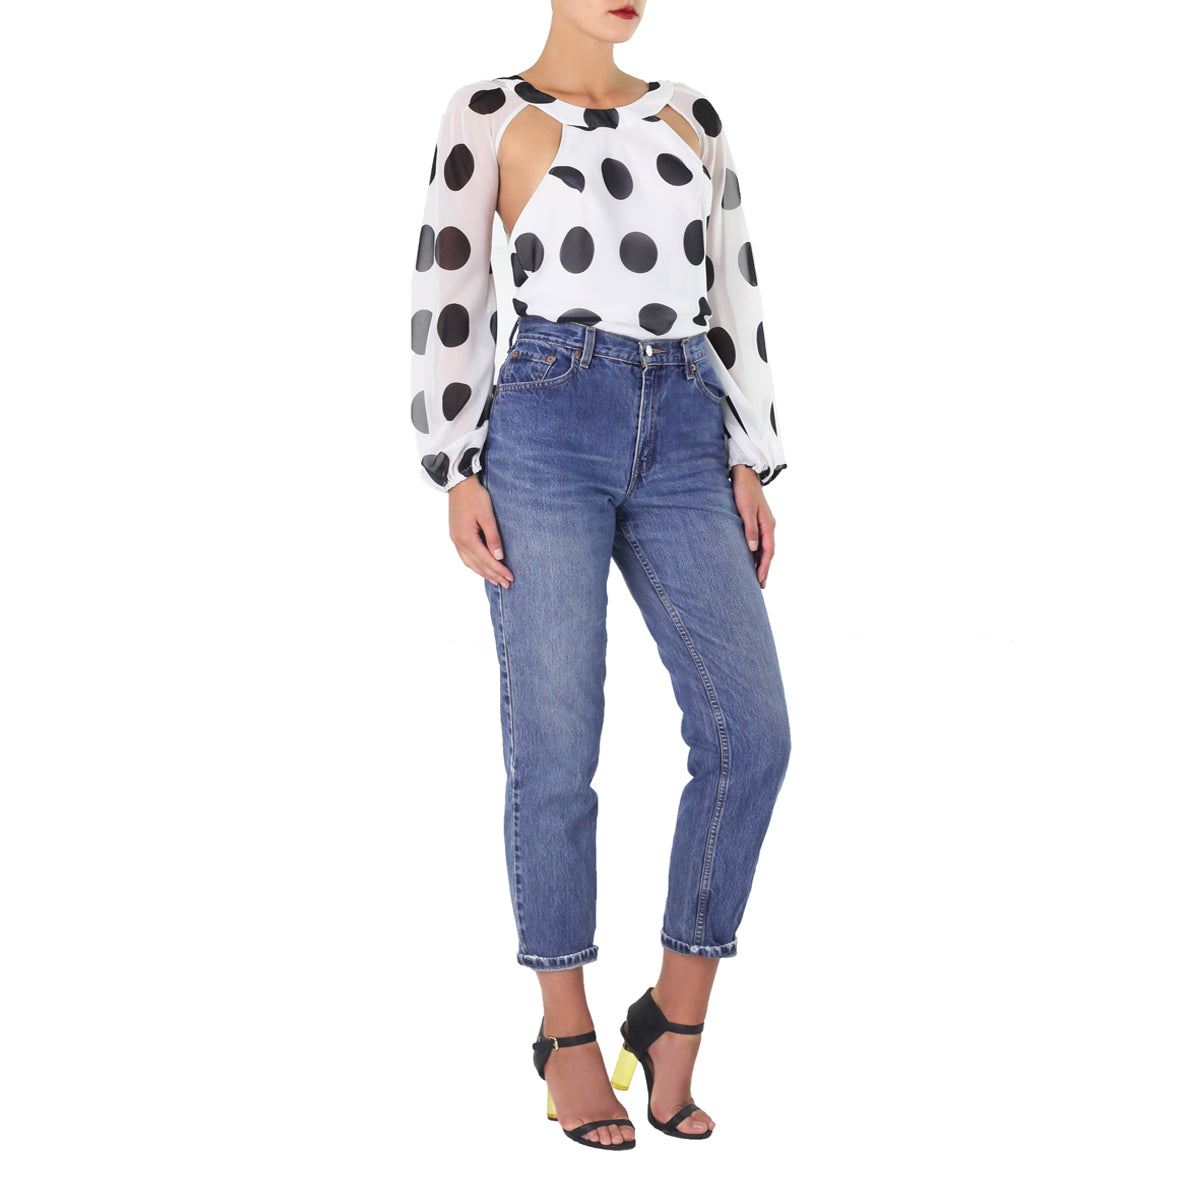 Polka Dot Maya Top